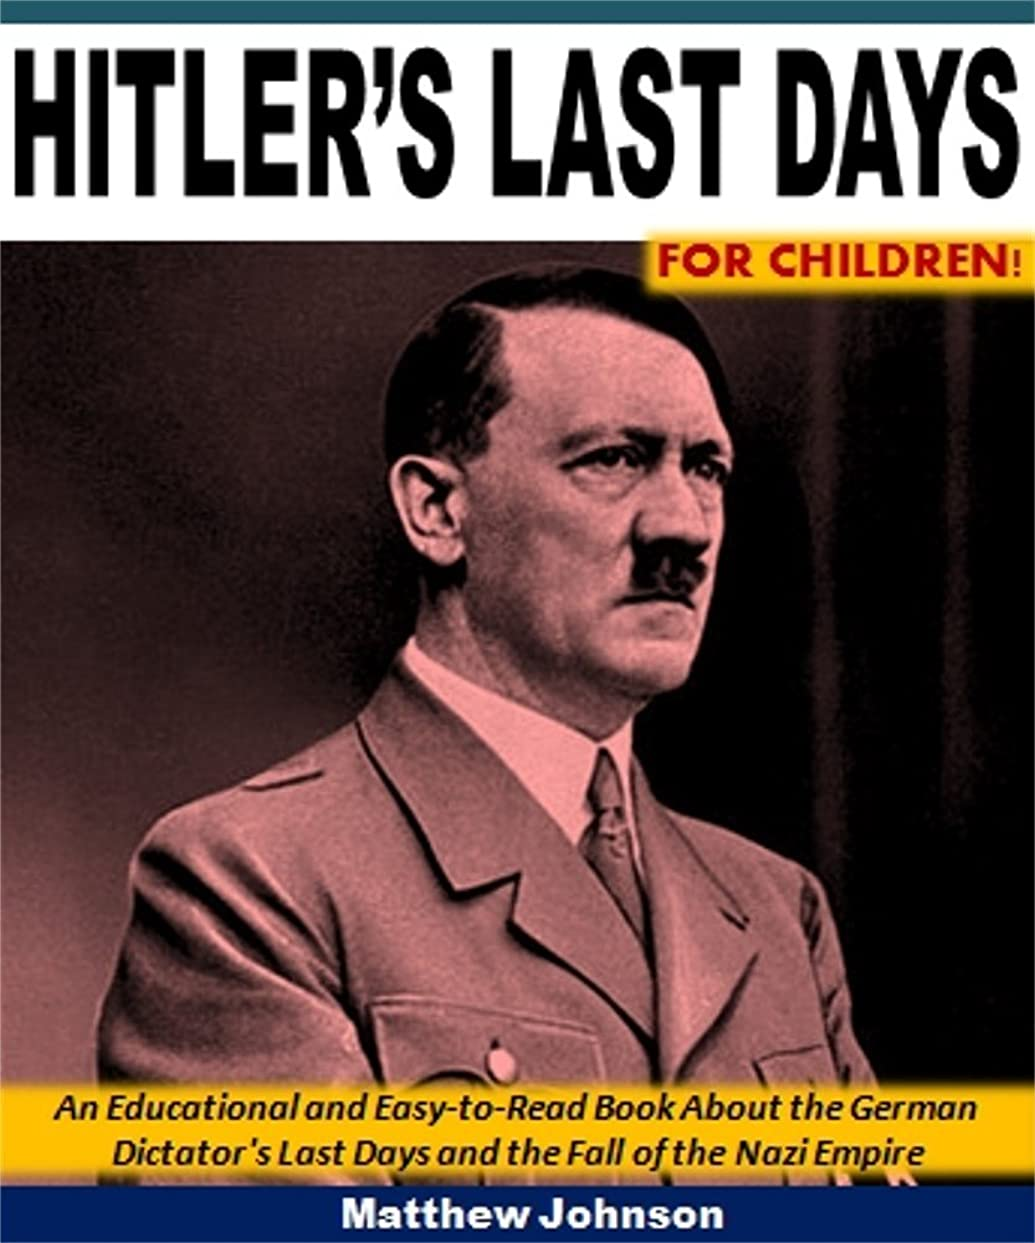 Hitler's Last Days for Children!: An Educational and Easy-to-Read Book About the German Dictator's Last Days and the Fall of the Nazi Empire (English Edition)